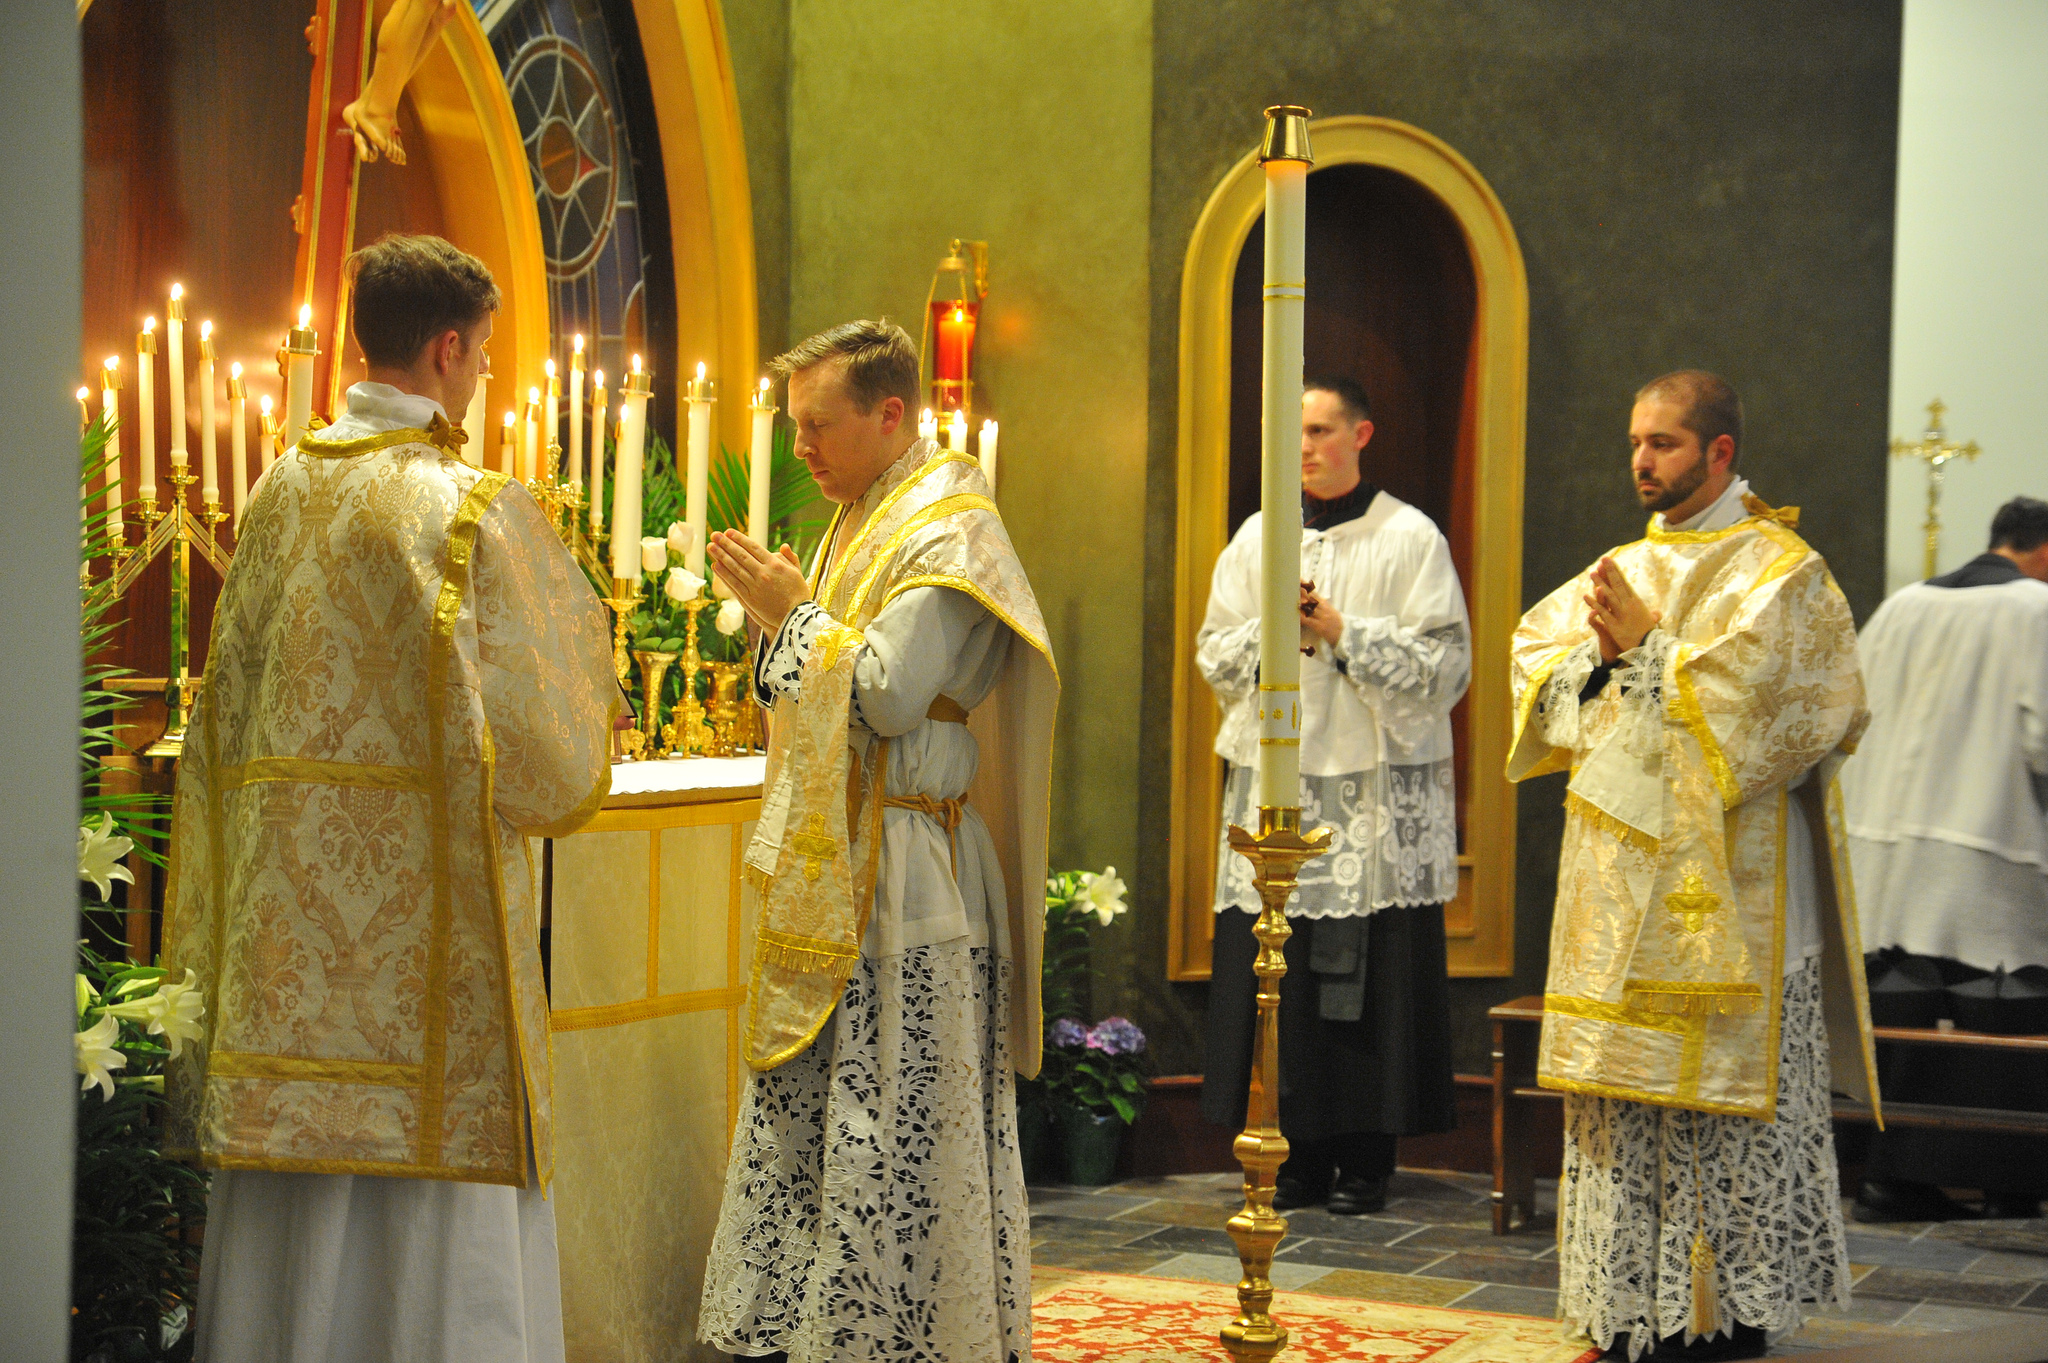 Photopost: Traditional Triduum Celebrated in Charlotte